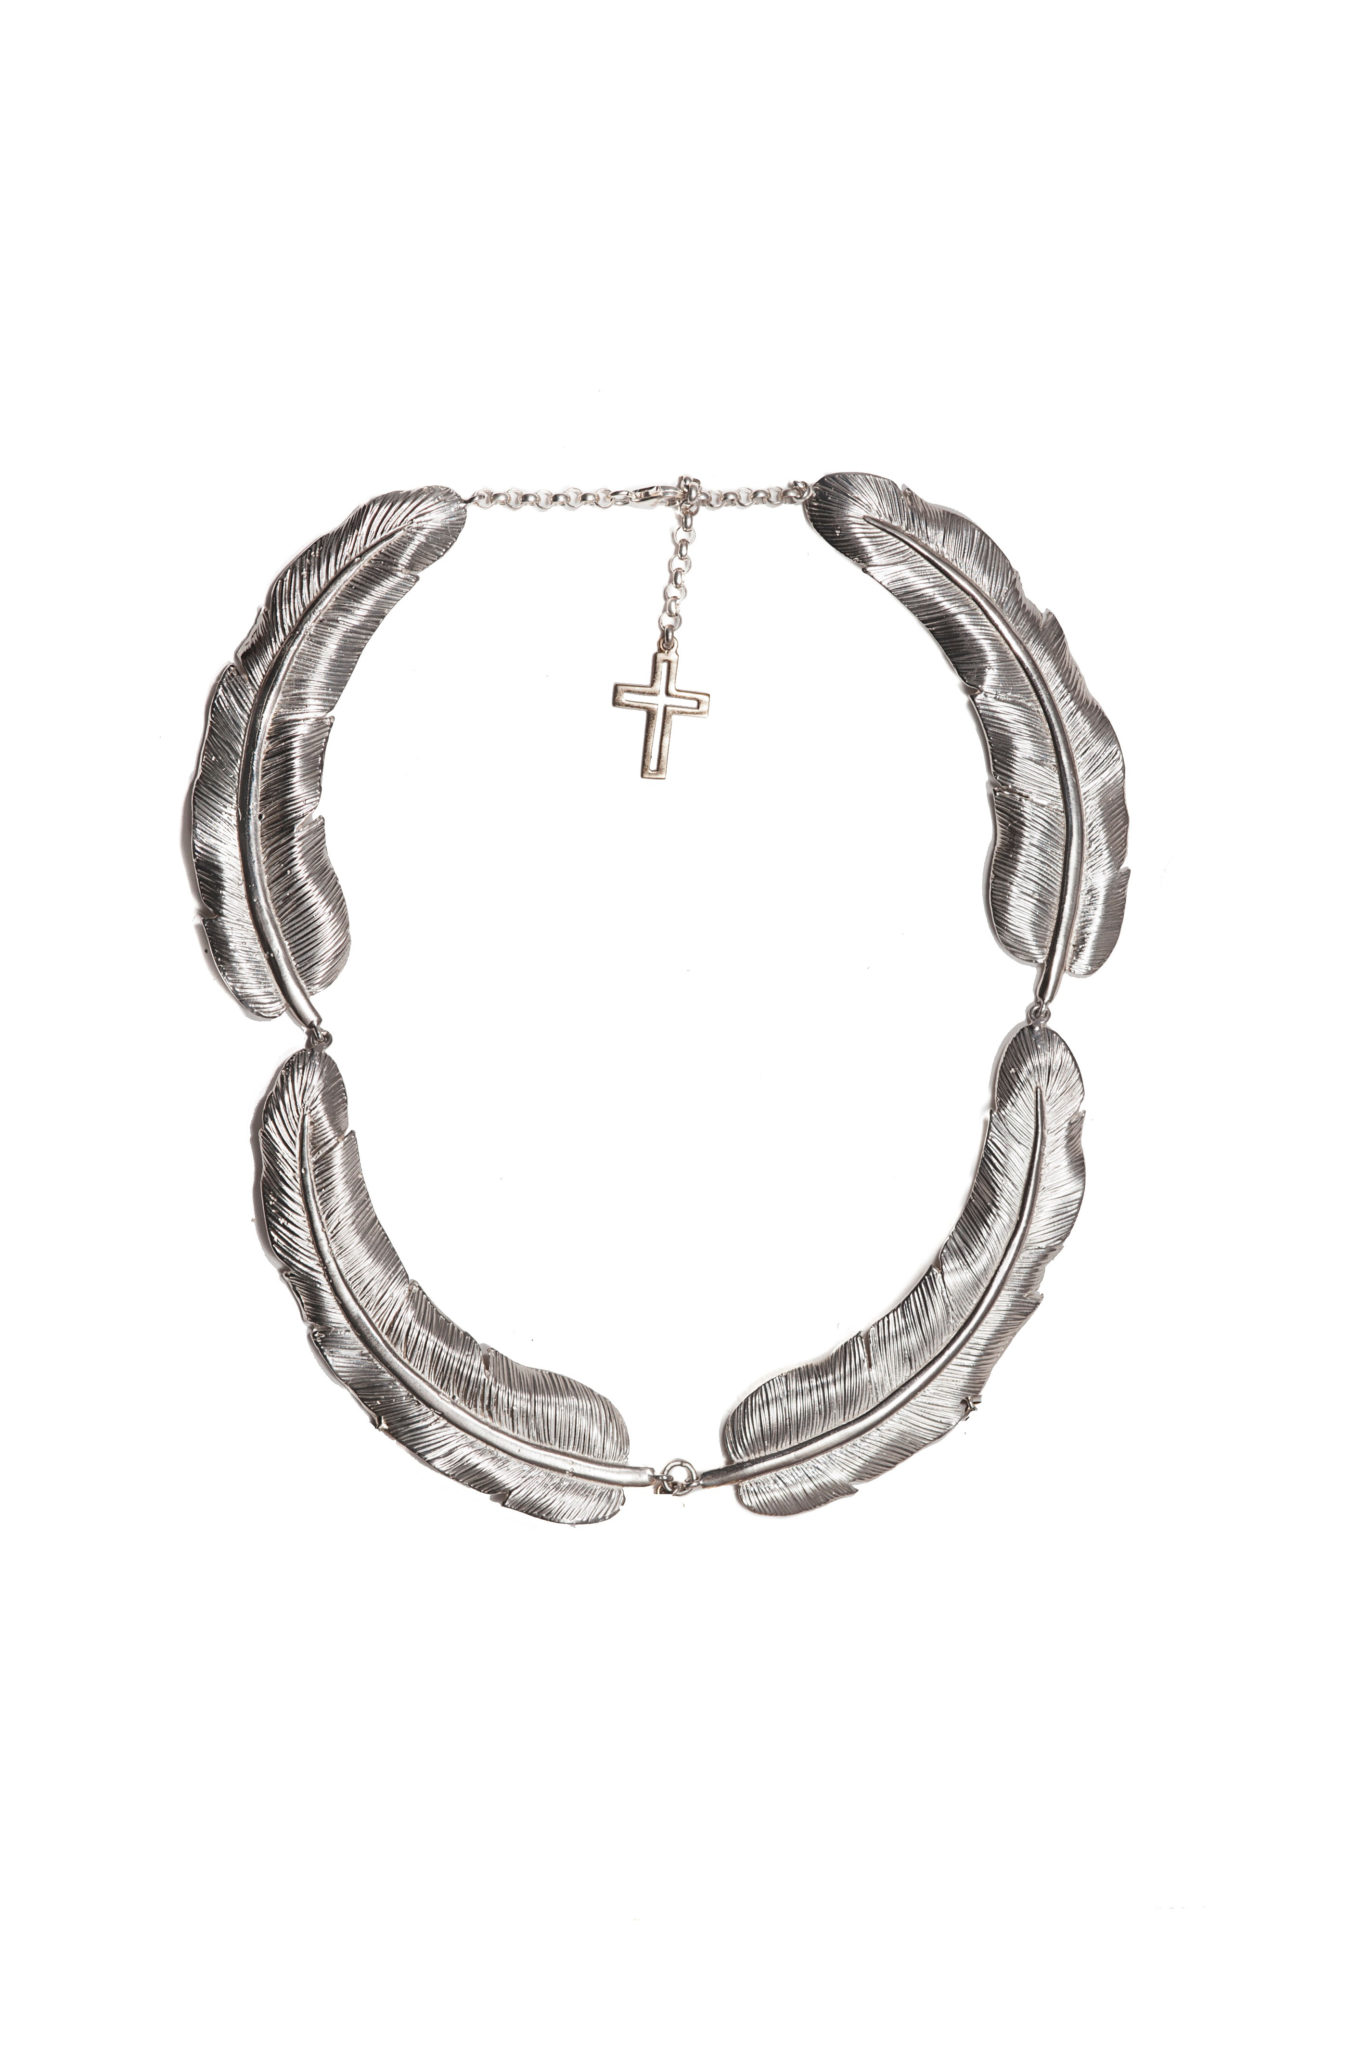 Big feathers silver necklaces